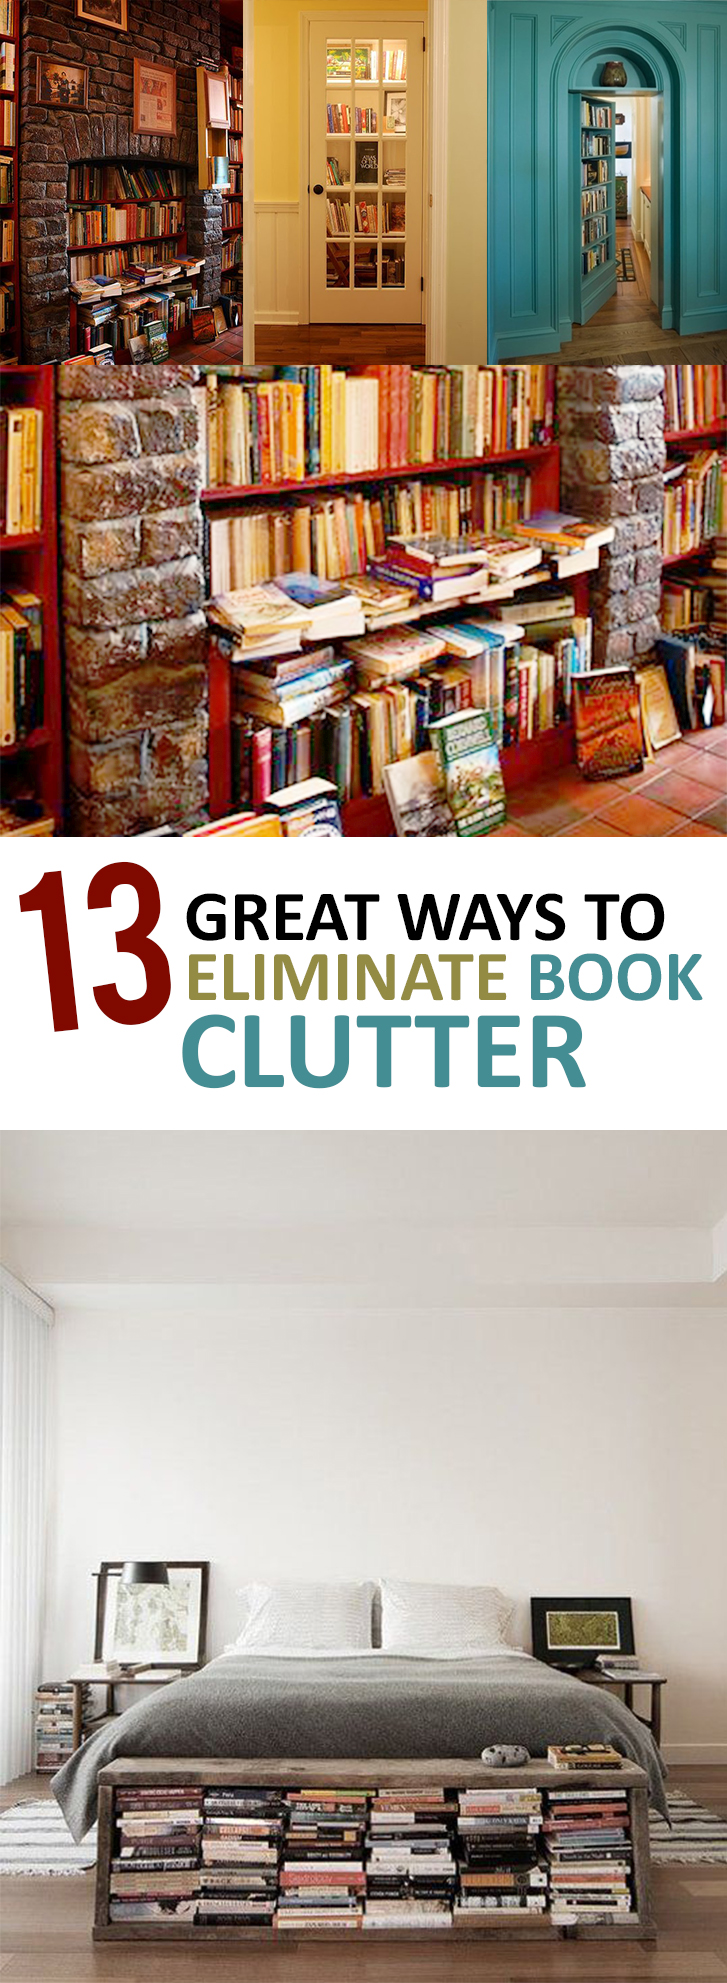 13 Great Ways to Eliminate Book Clutter (1)